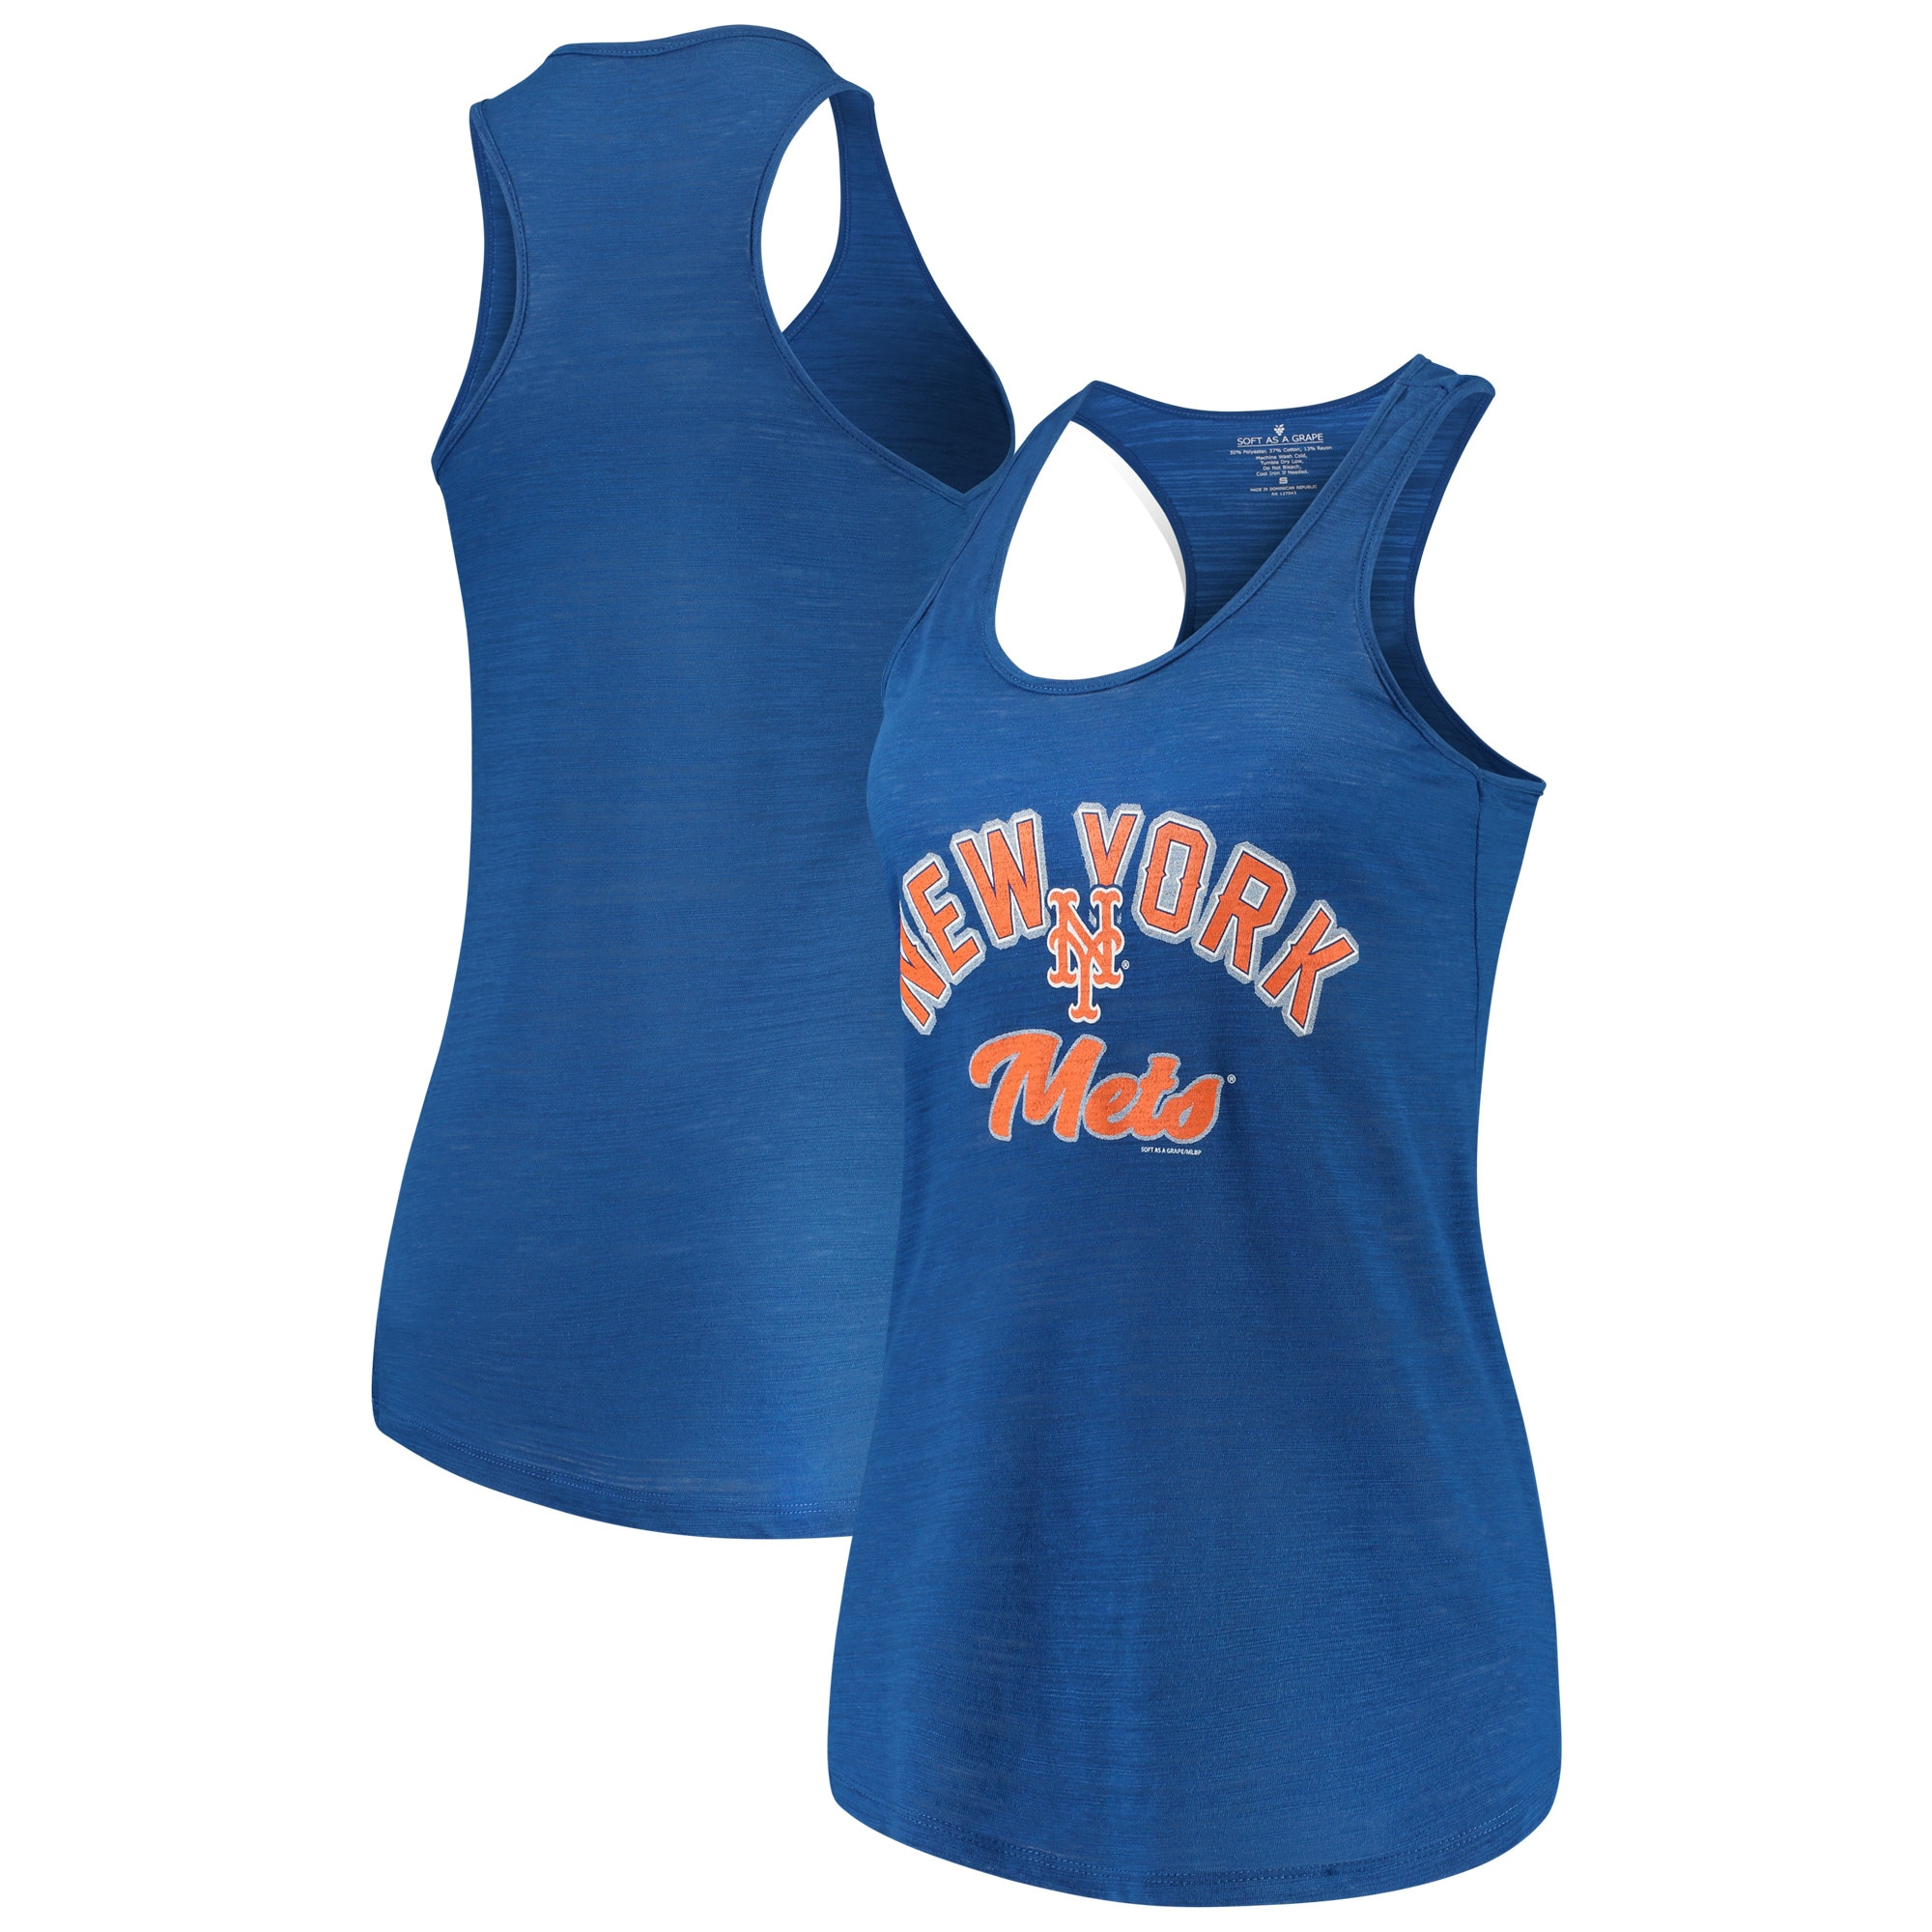 New York Mets Soft as a Grape Women's Multicount Racerback Tank Top - Royal